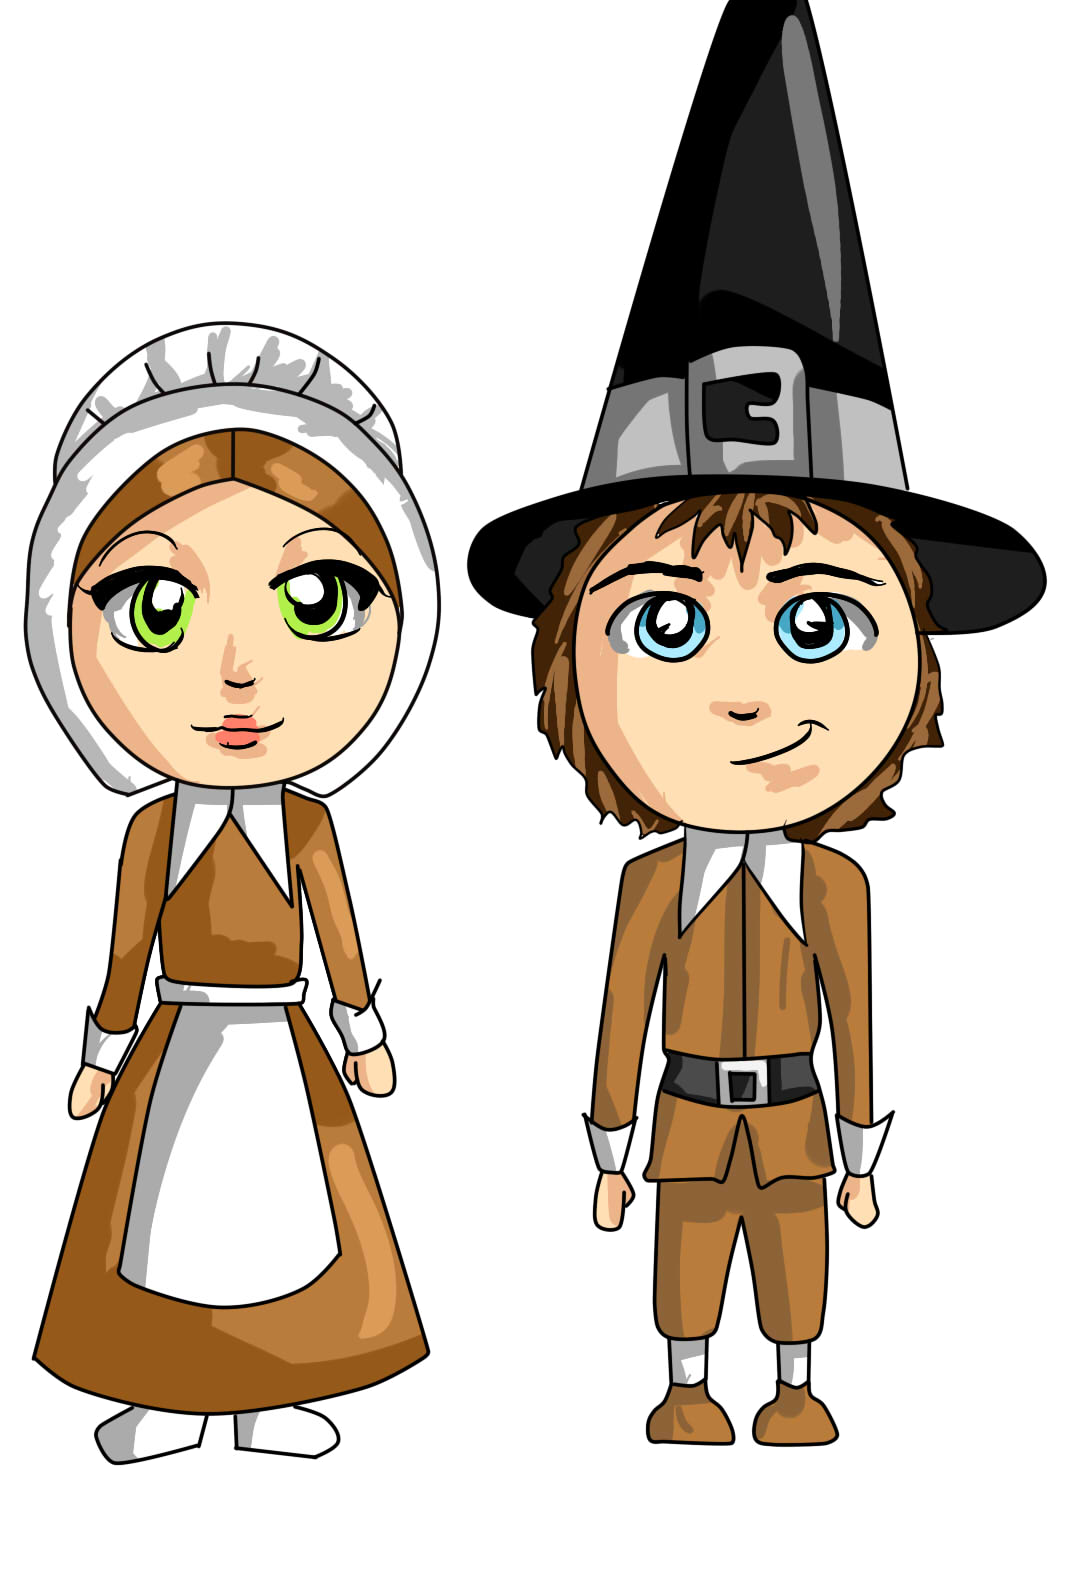 Pilgrims clipart first. Pilgrim animated